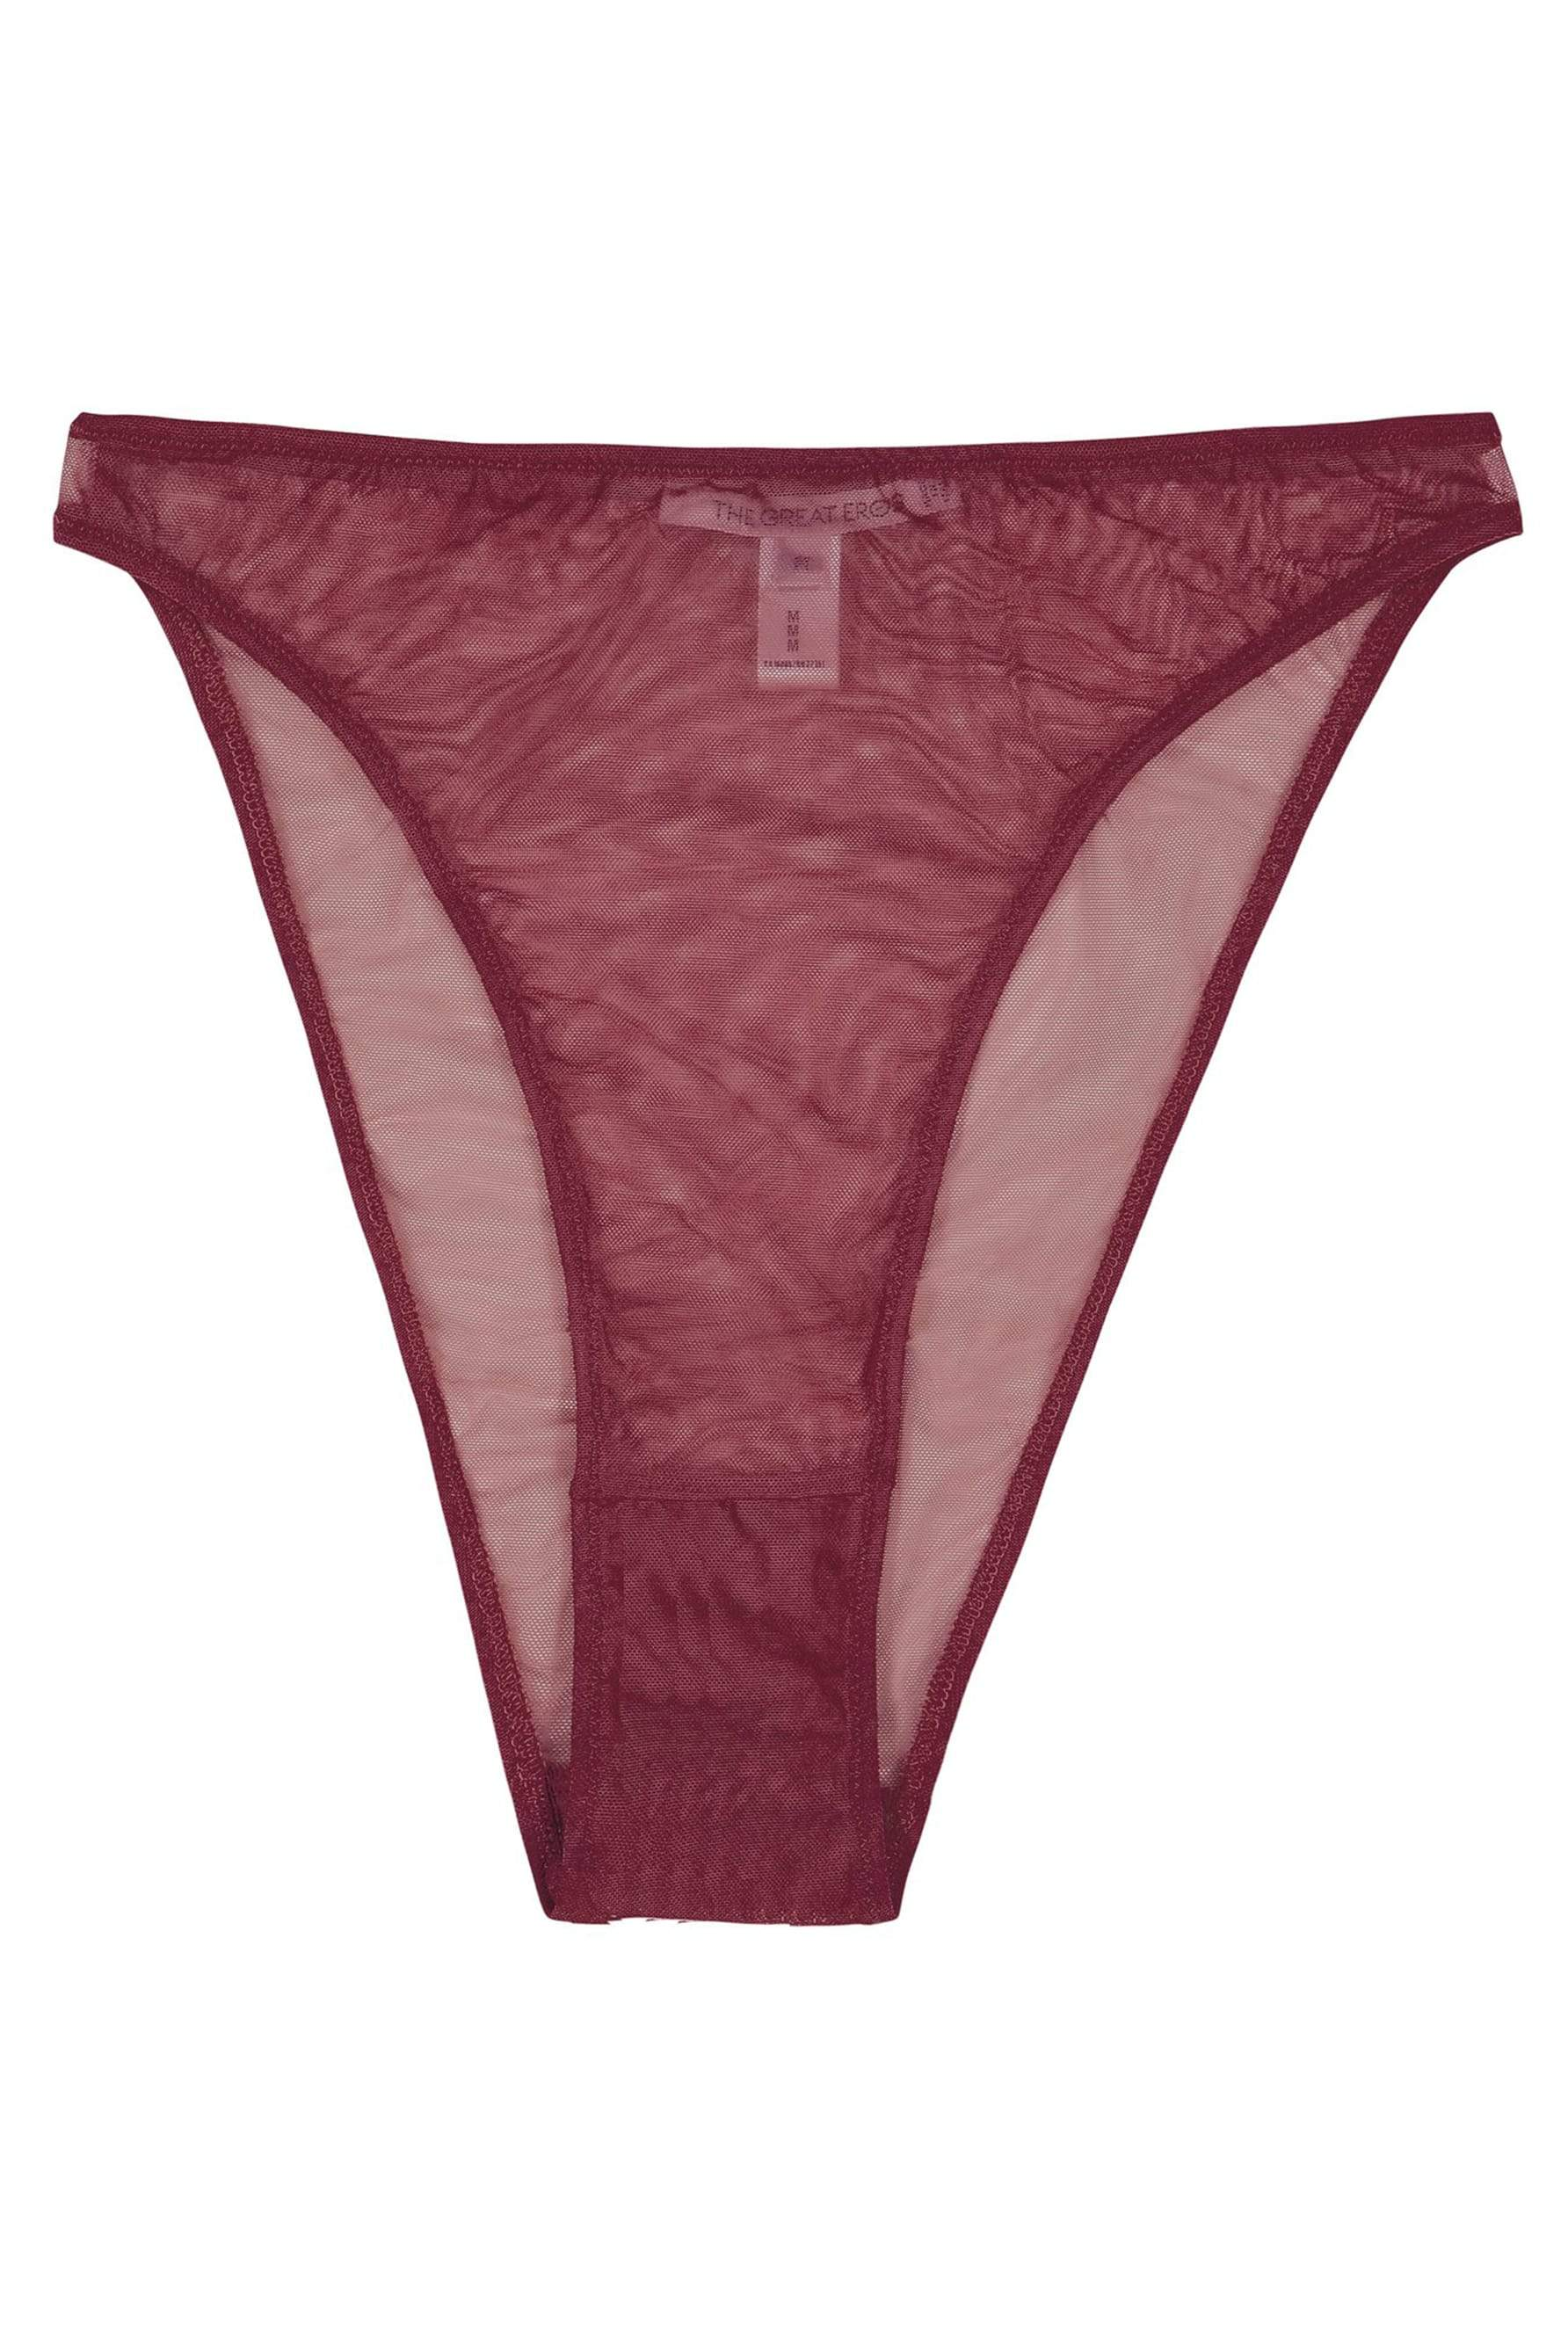 Currant Canova French Cut Brief